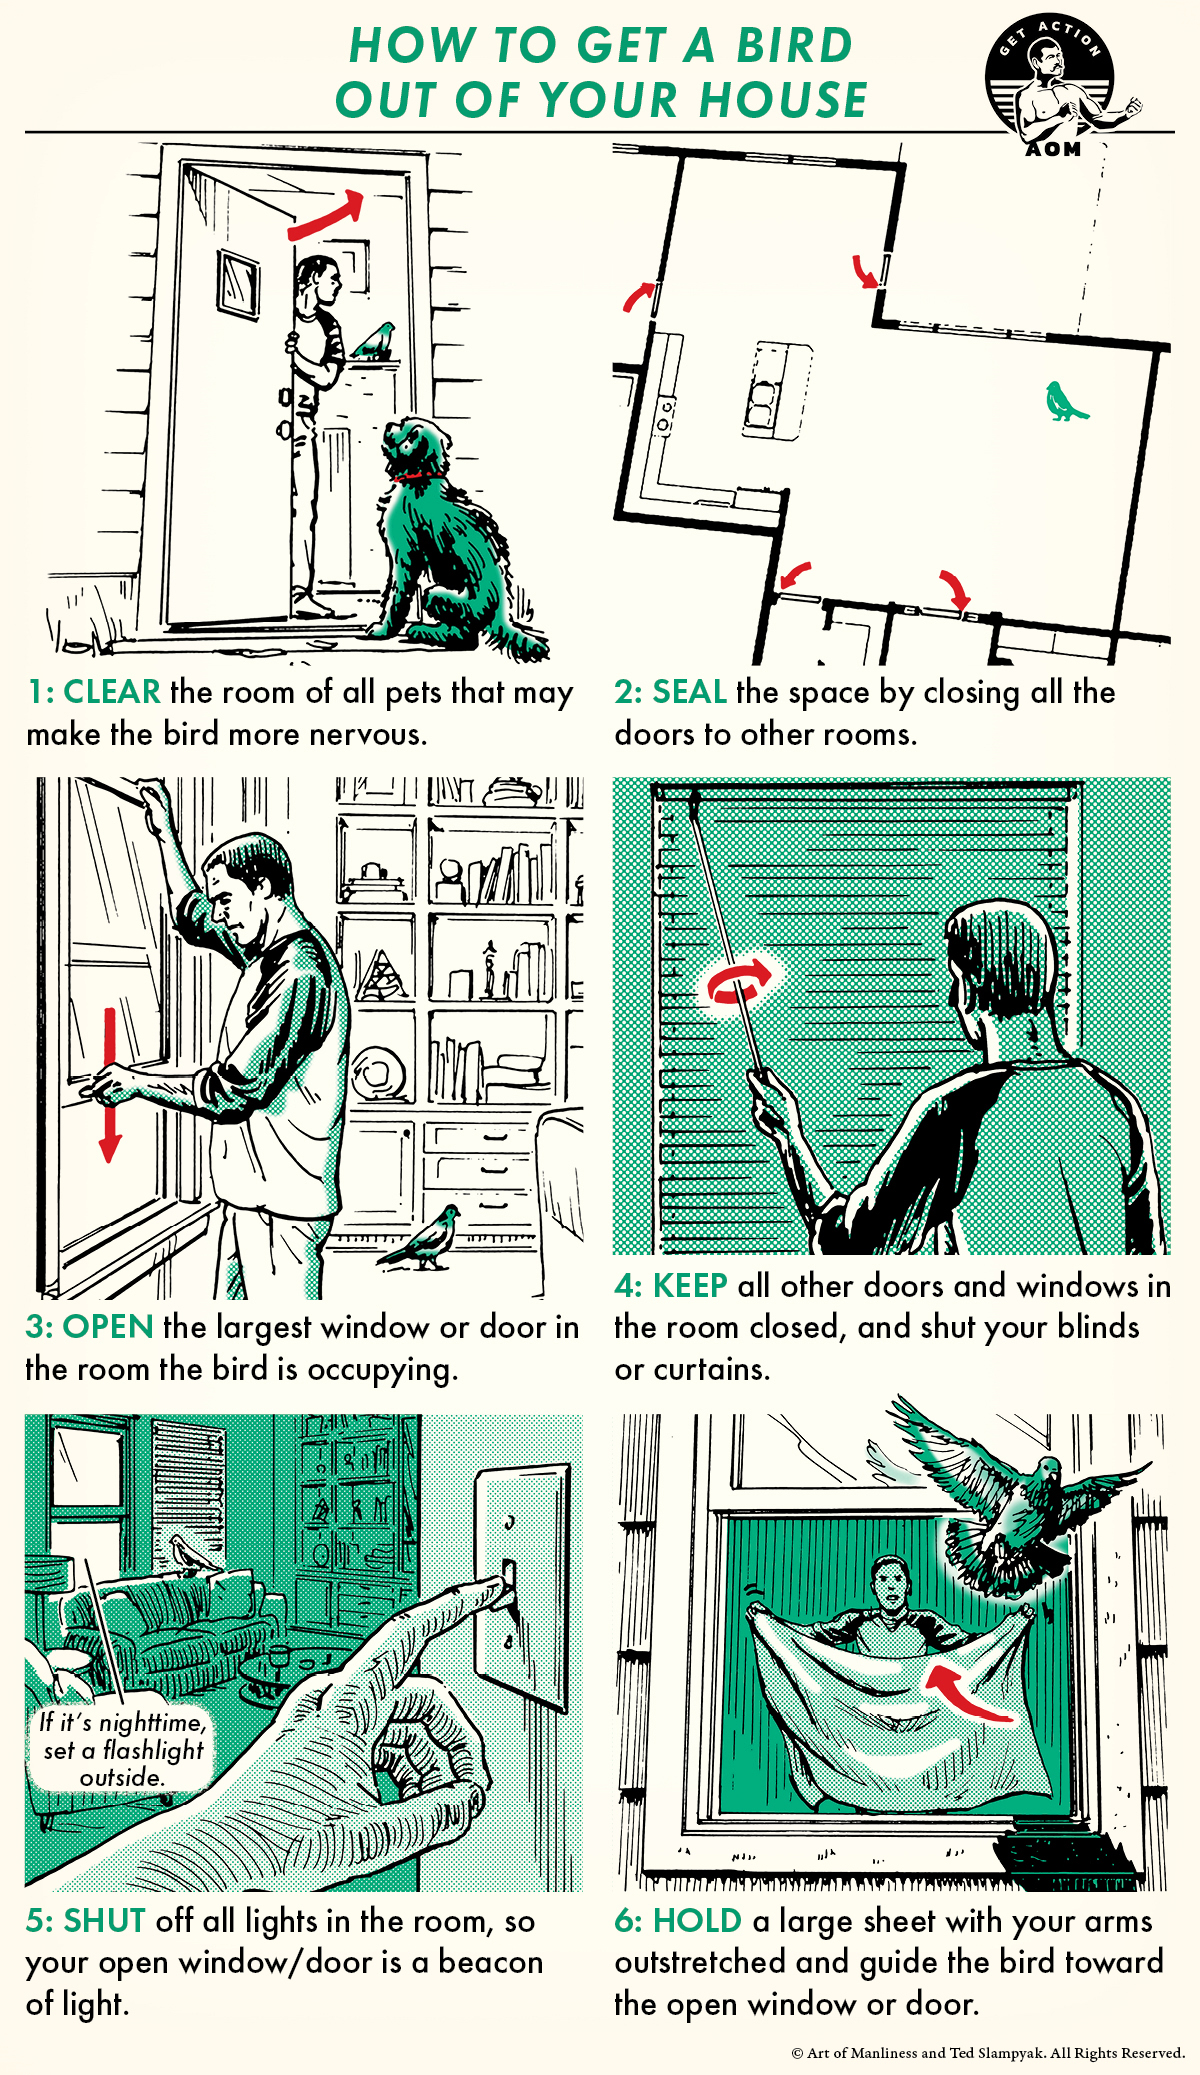 Illustration of getting birds out of the house.